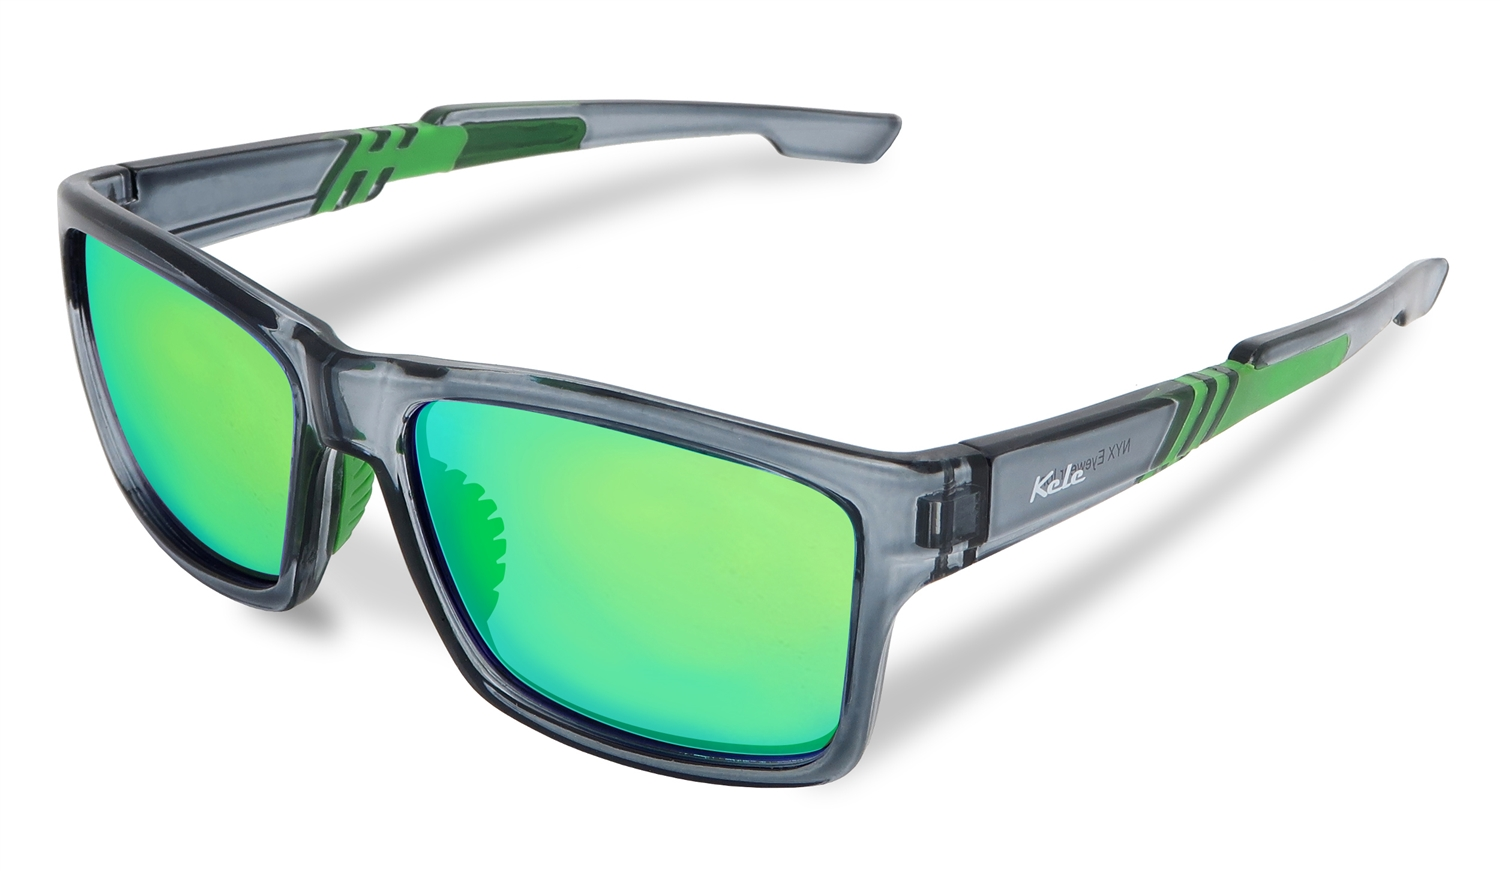 Kele Crystal and Ice Green Sunglasses